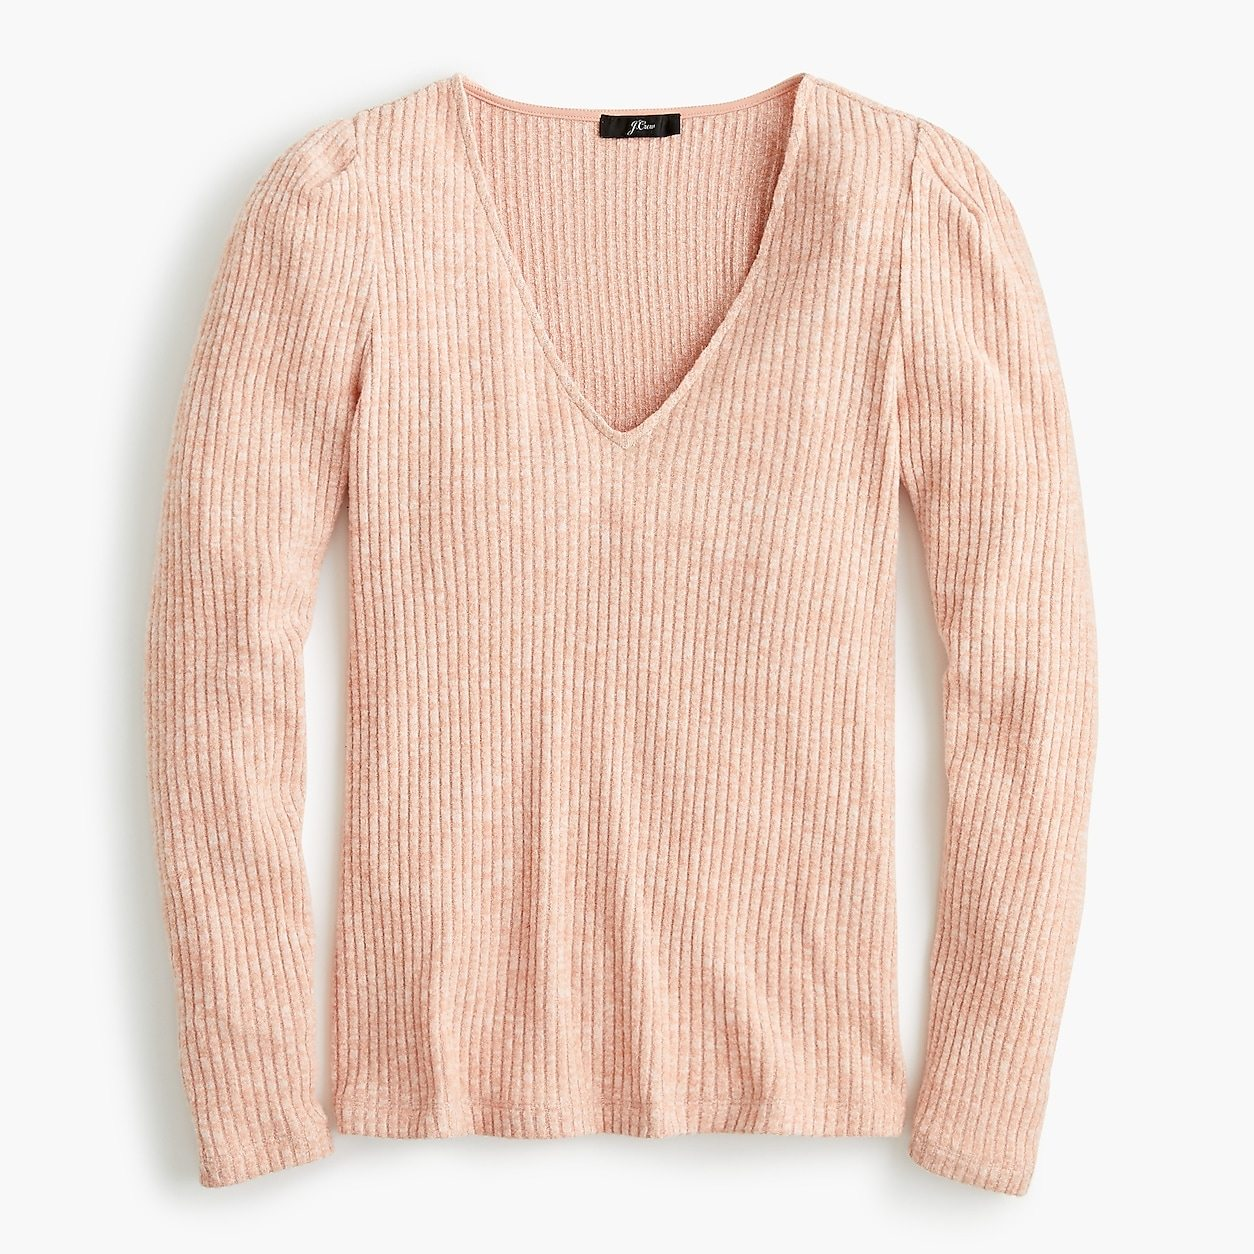 Puff sleeve V-neck top in soft rib